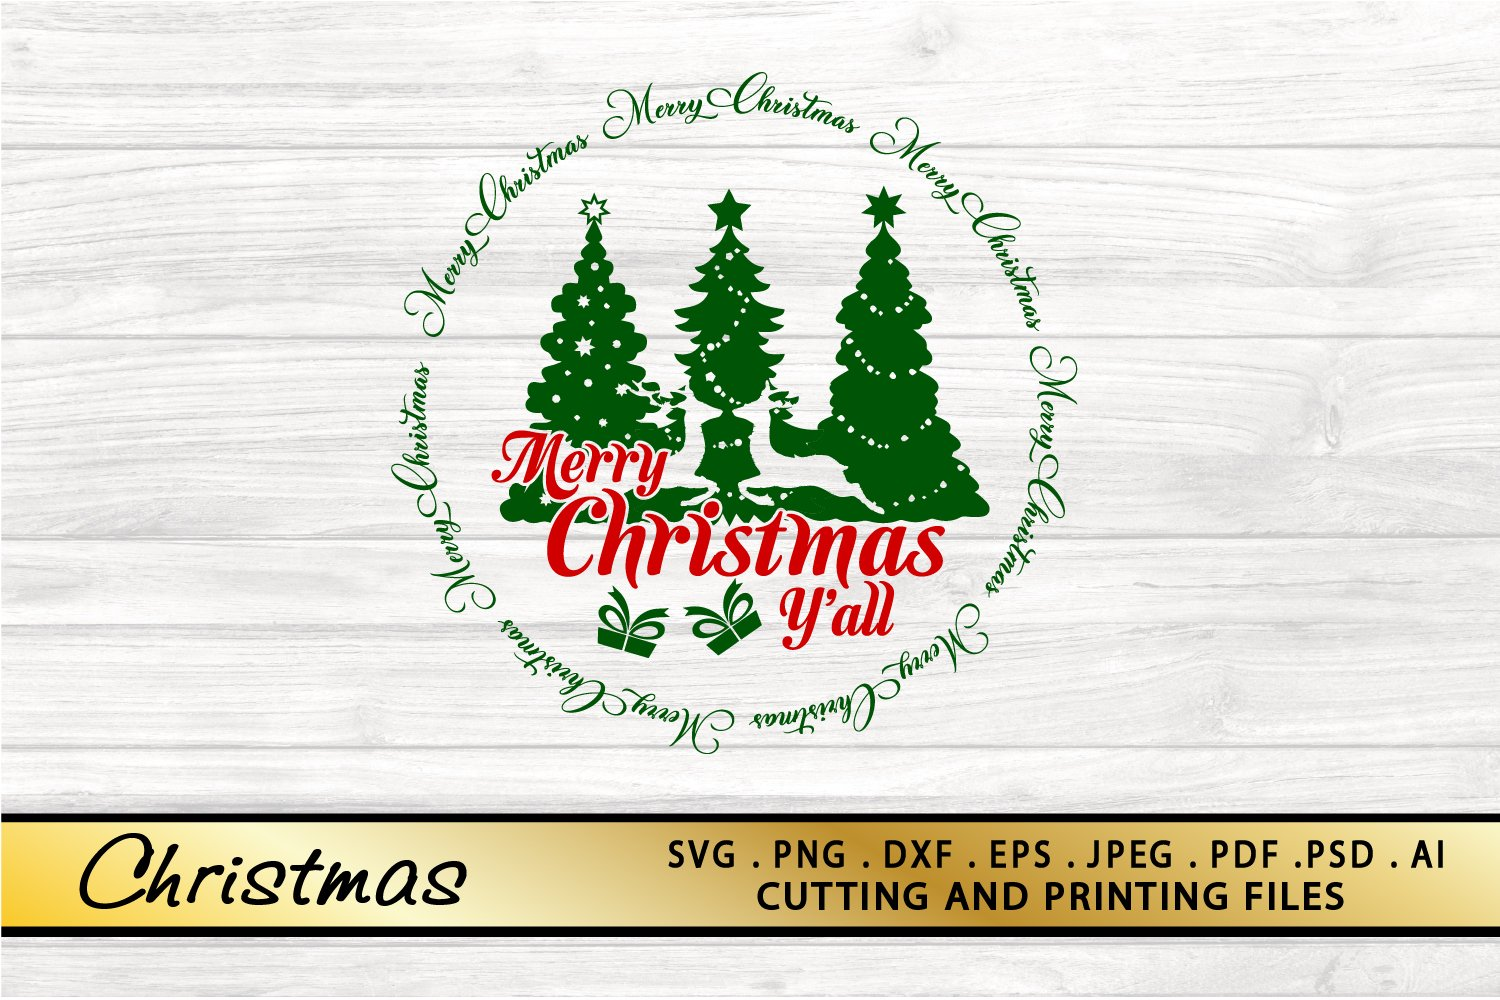 Christmas Svg Png Eps Dxf Files For Cutting And Printing 735927 Illustrations Design Bundles